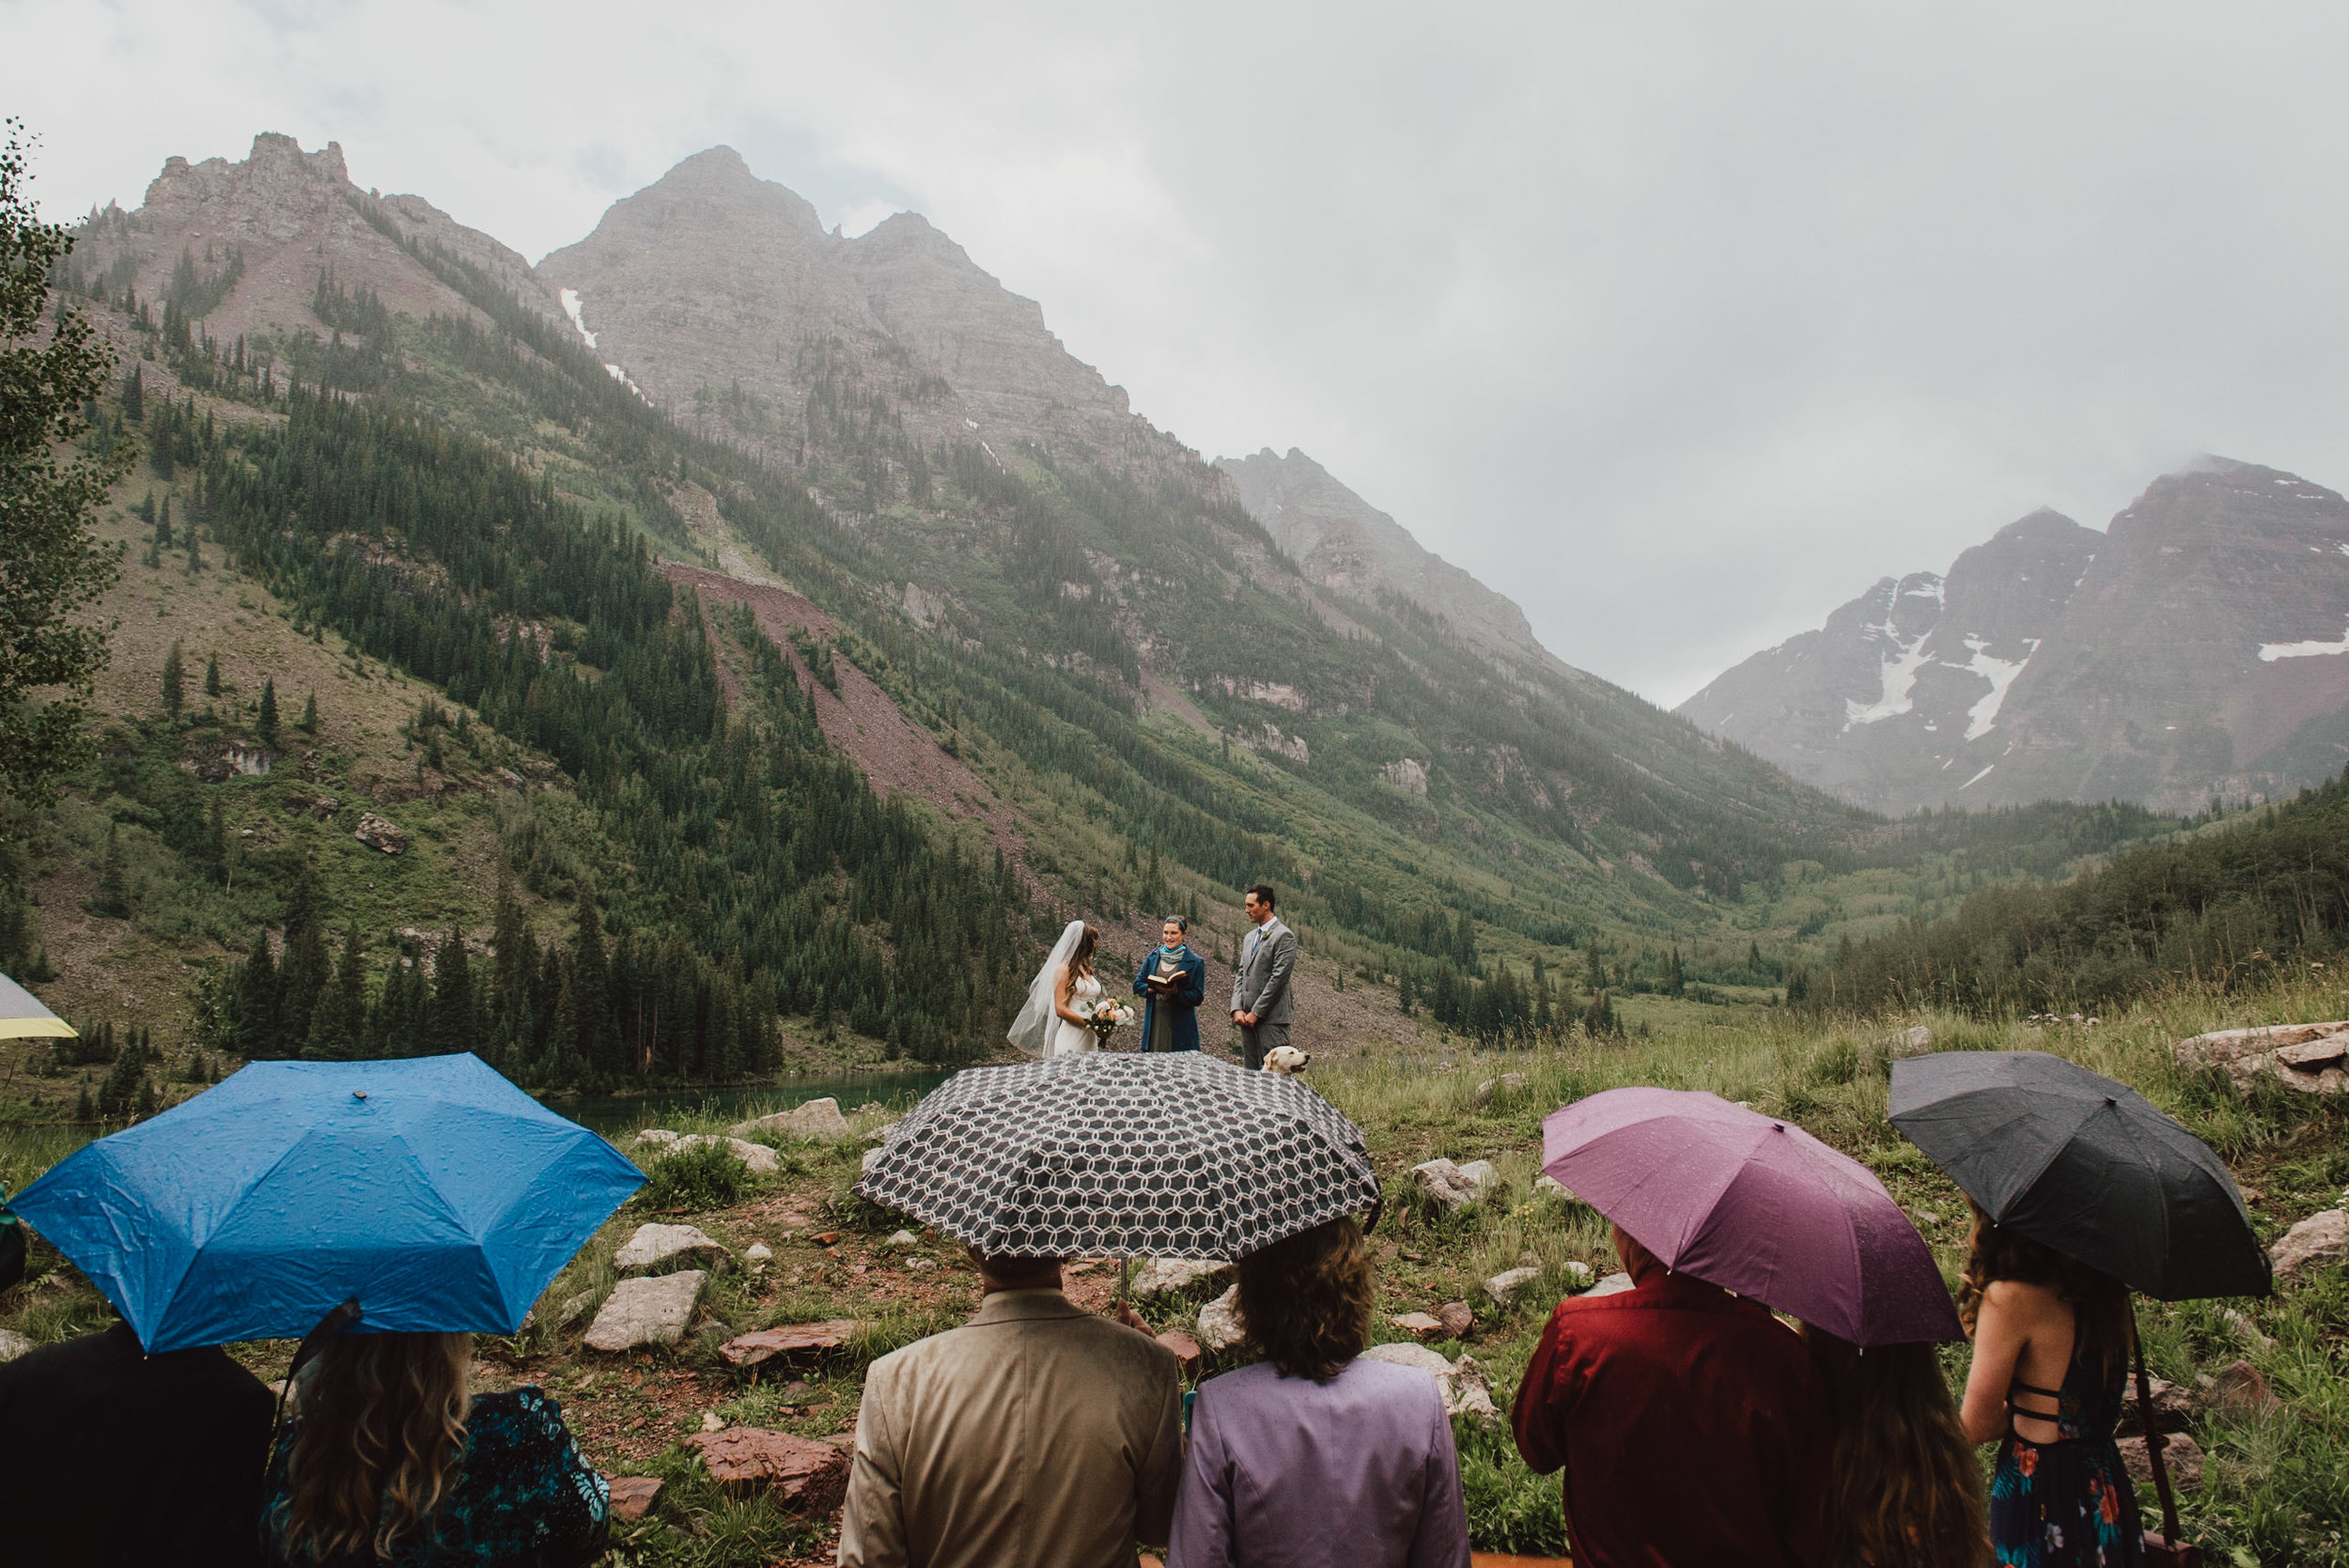 Rainy day ceremony at the Maroon Bells.